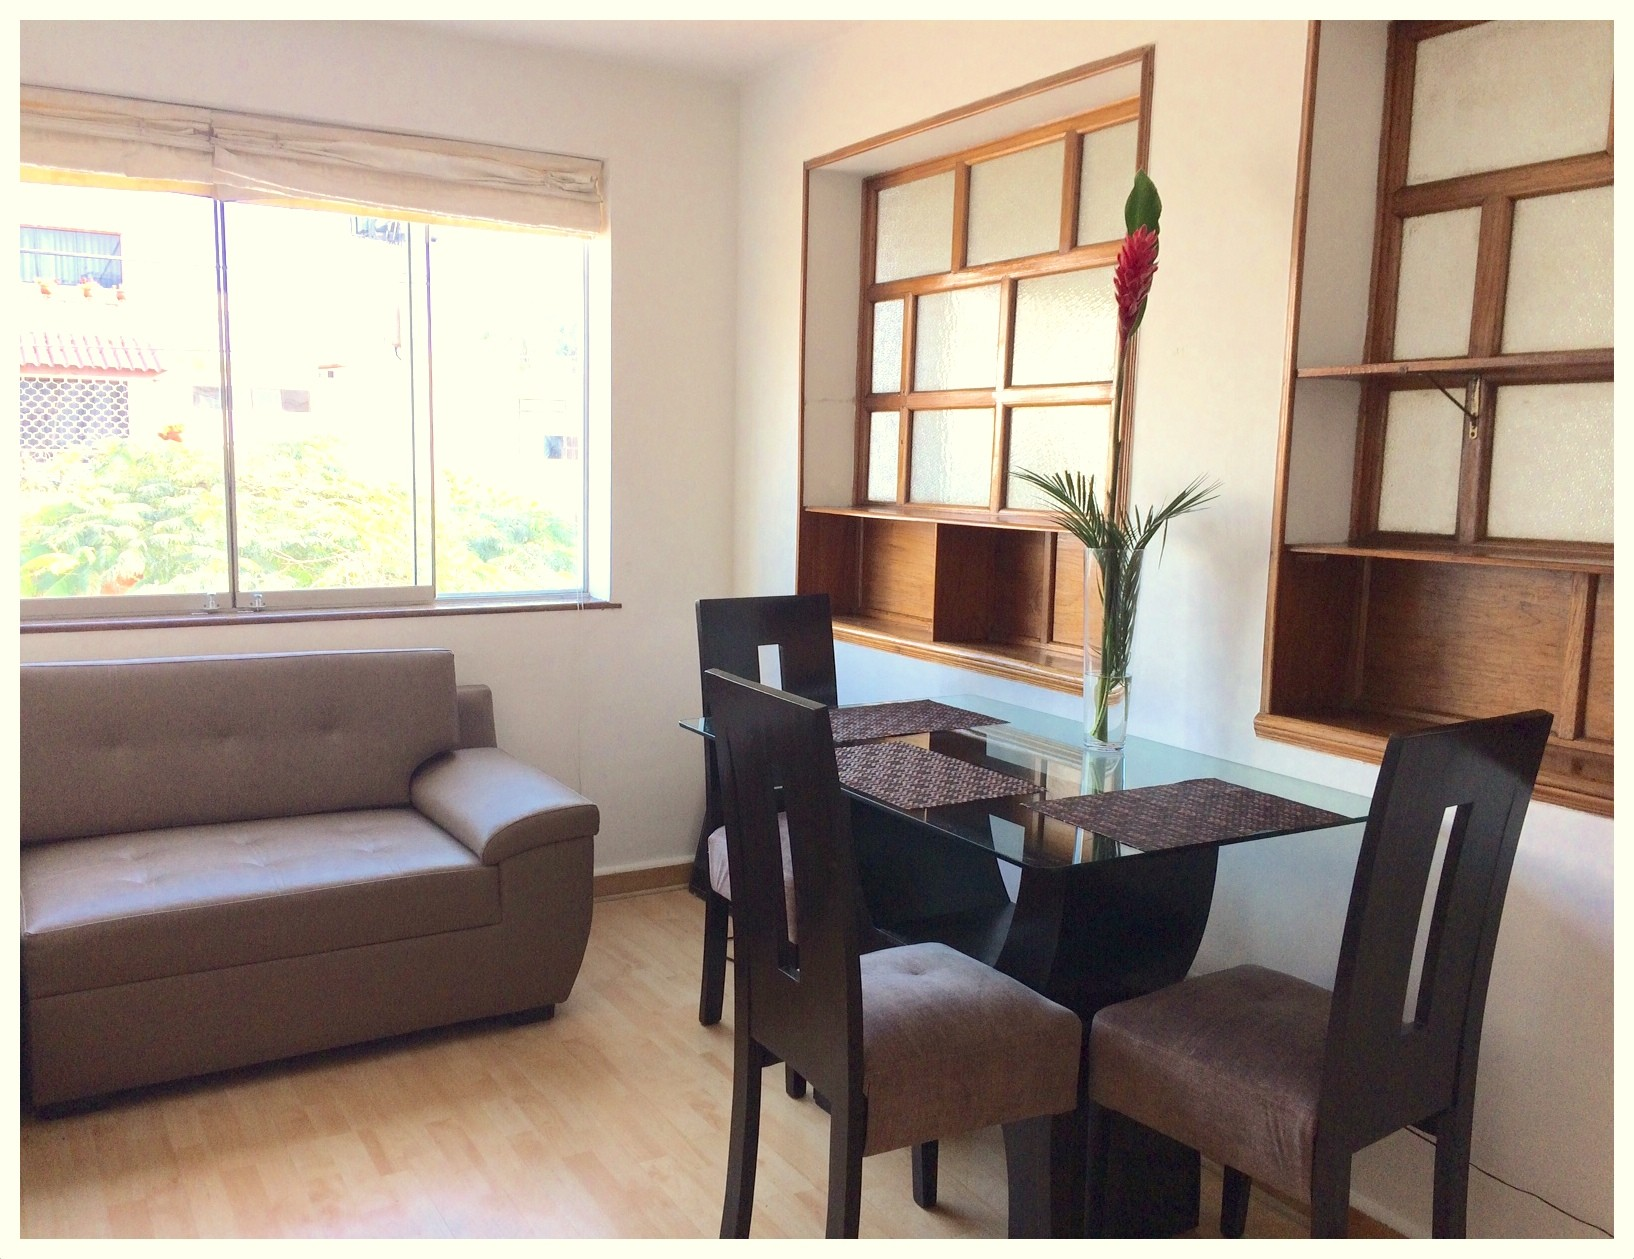 ... Cozy two floor/two bedroom apartment (Magdalena del Mar-San Isid ... & Cozy two floor/two bedroom apartment (Magdalena del Mar-San Isidro ...